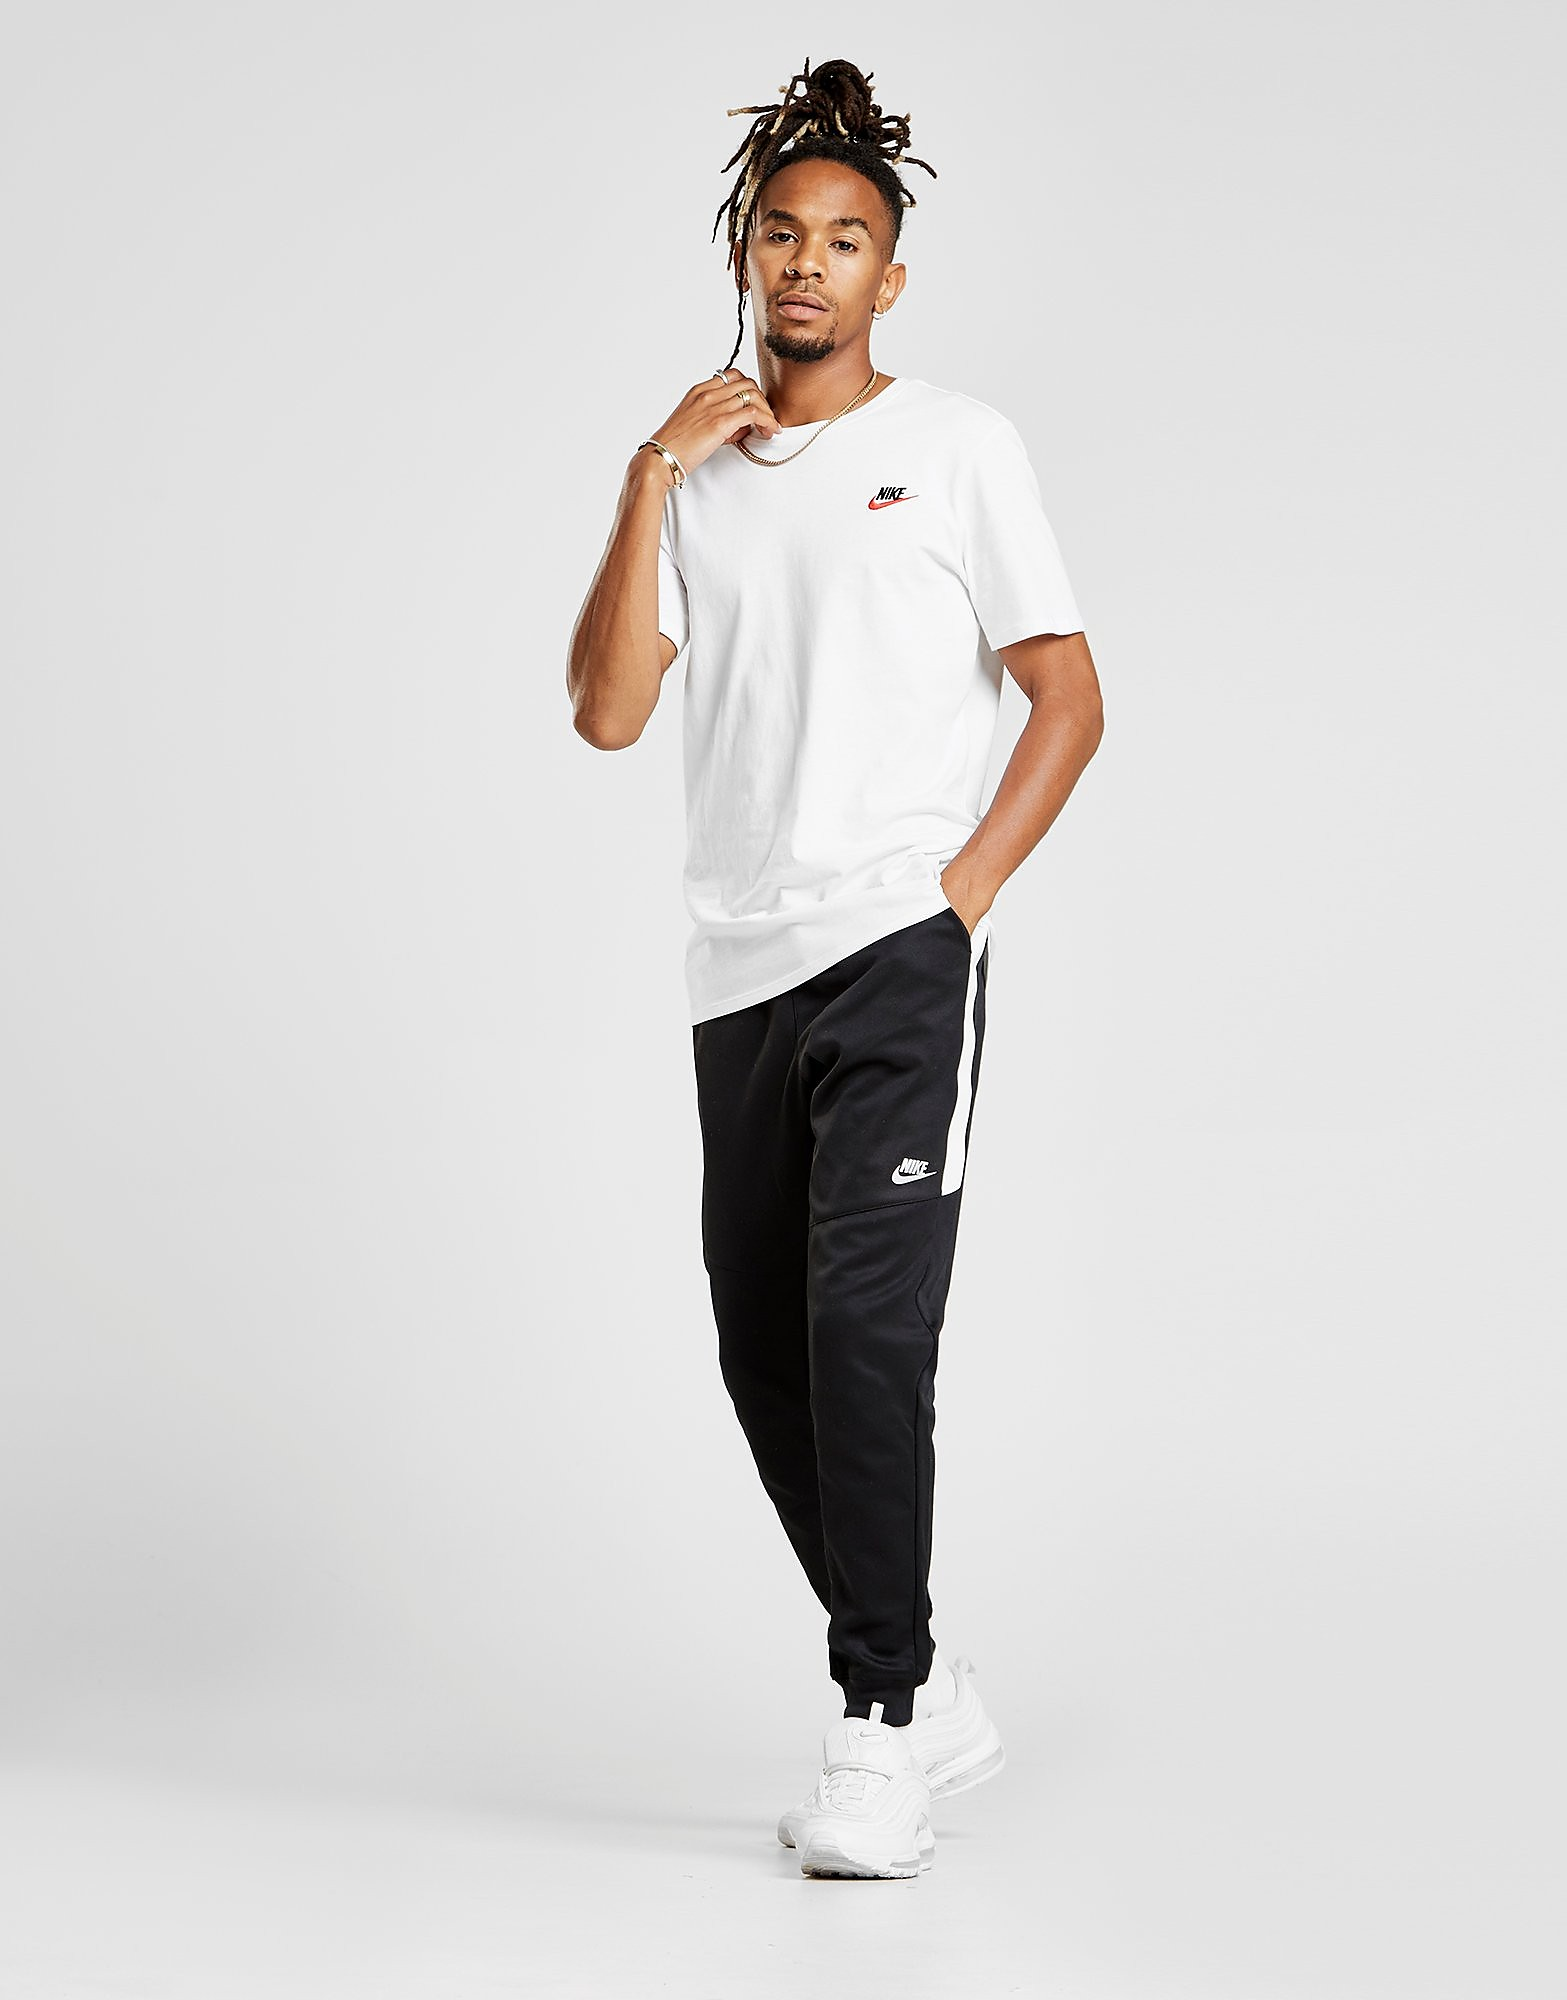 Nike Tribute DC Pants - Black/White - Mens, Black/White